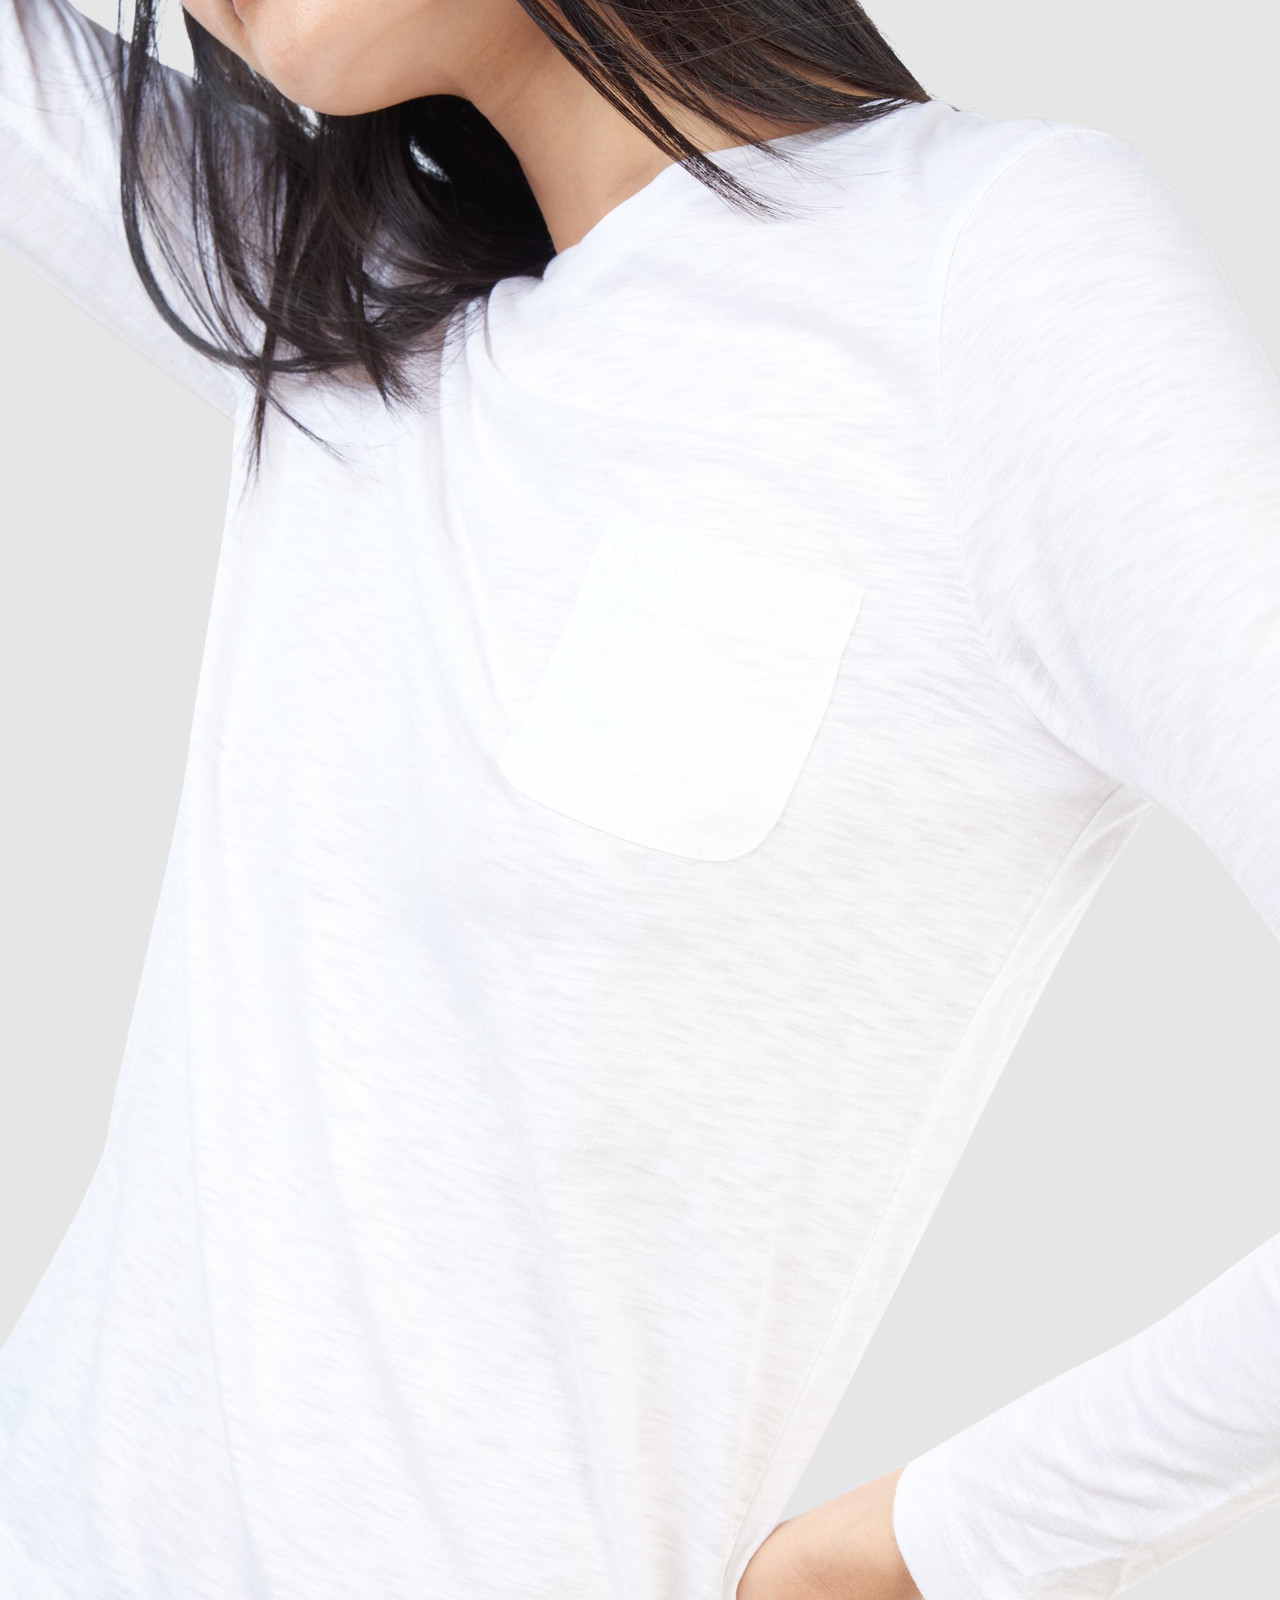 Superdry Womens SCRIPTED L/S CREW TOP White Long Sleeve Top 6